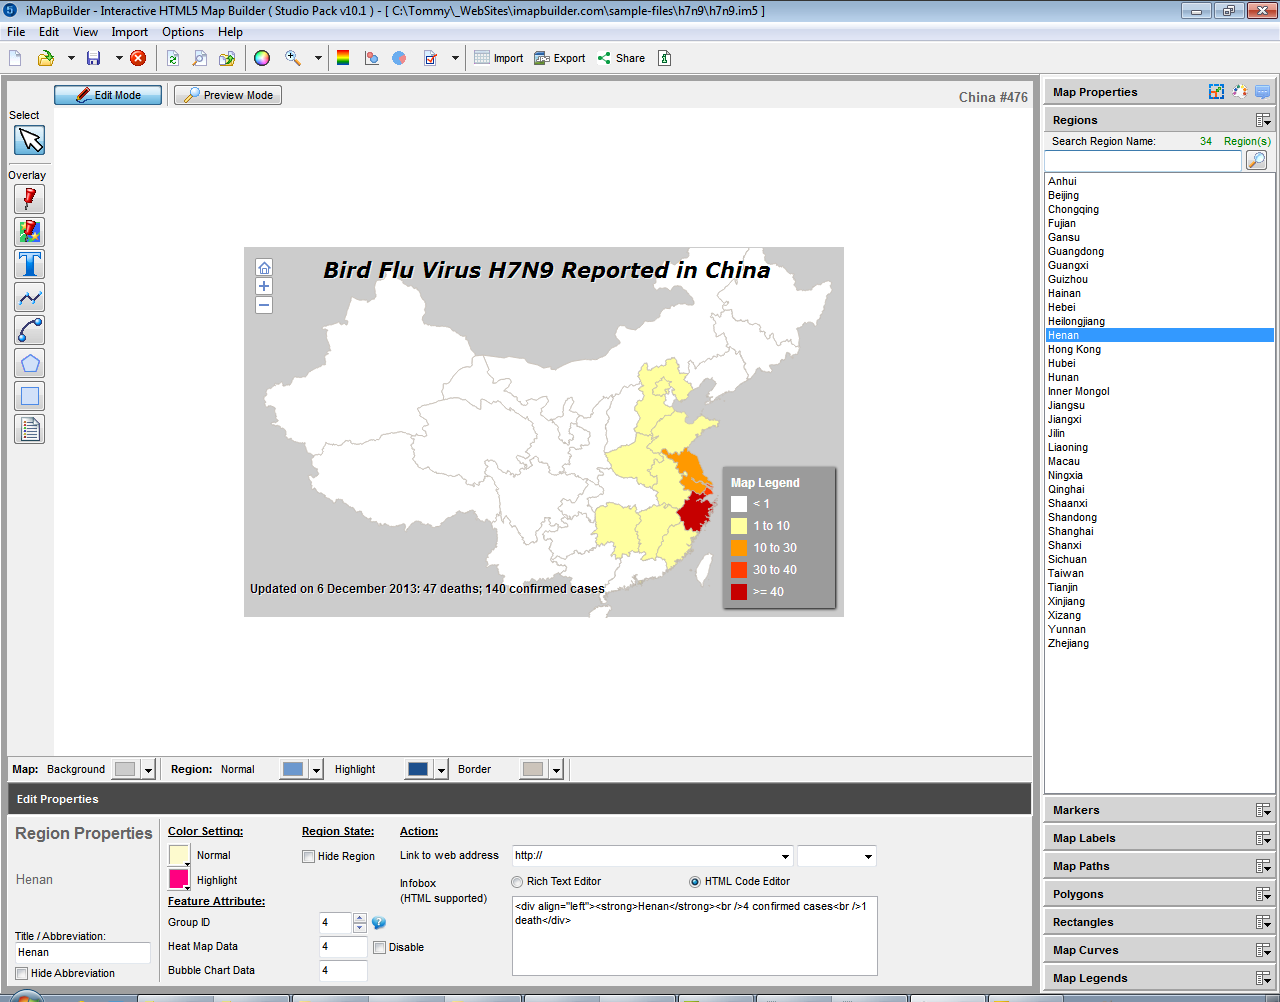 iMapBuilder Interactive HTML5 Map Builder, Presentation Software Screenshot